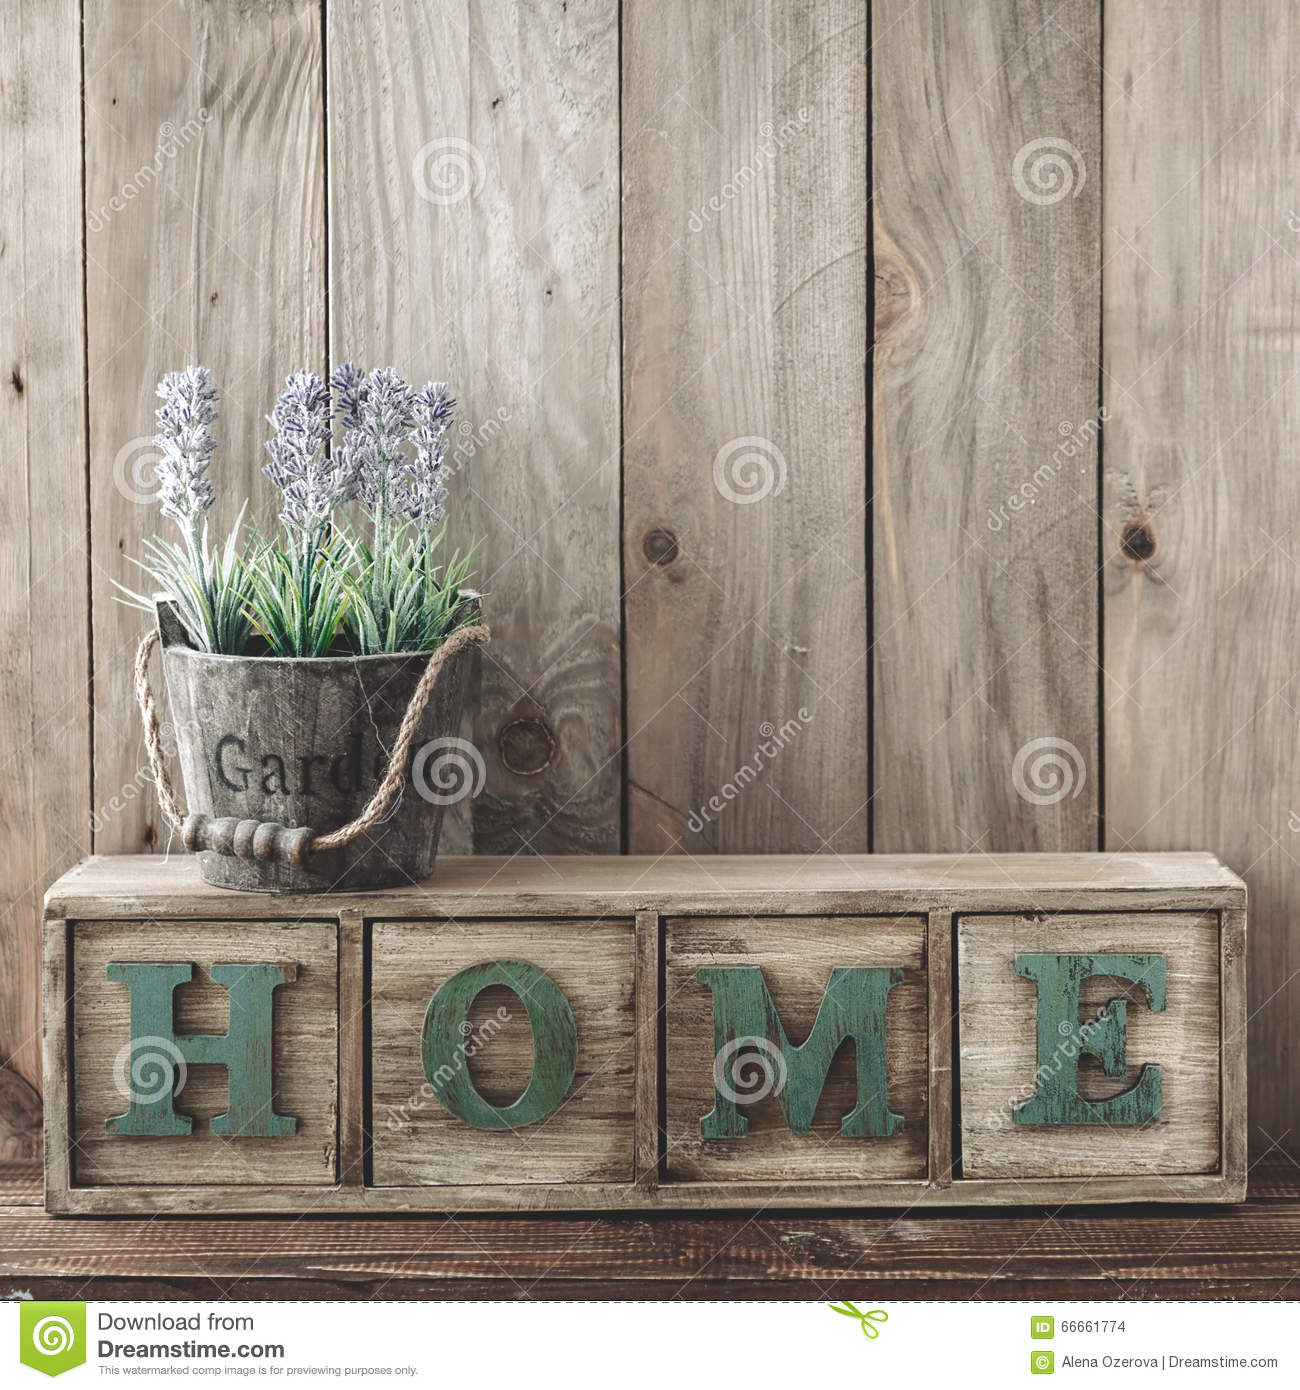 Storage Box With Home Lettesr And Flowers In A Pot On Wooden Background Rustic Decor Cottage Living